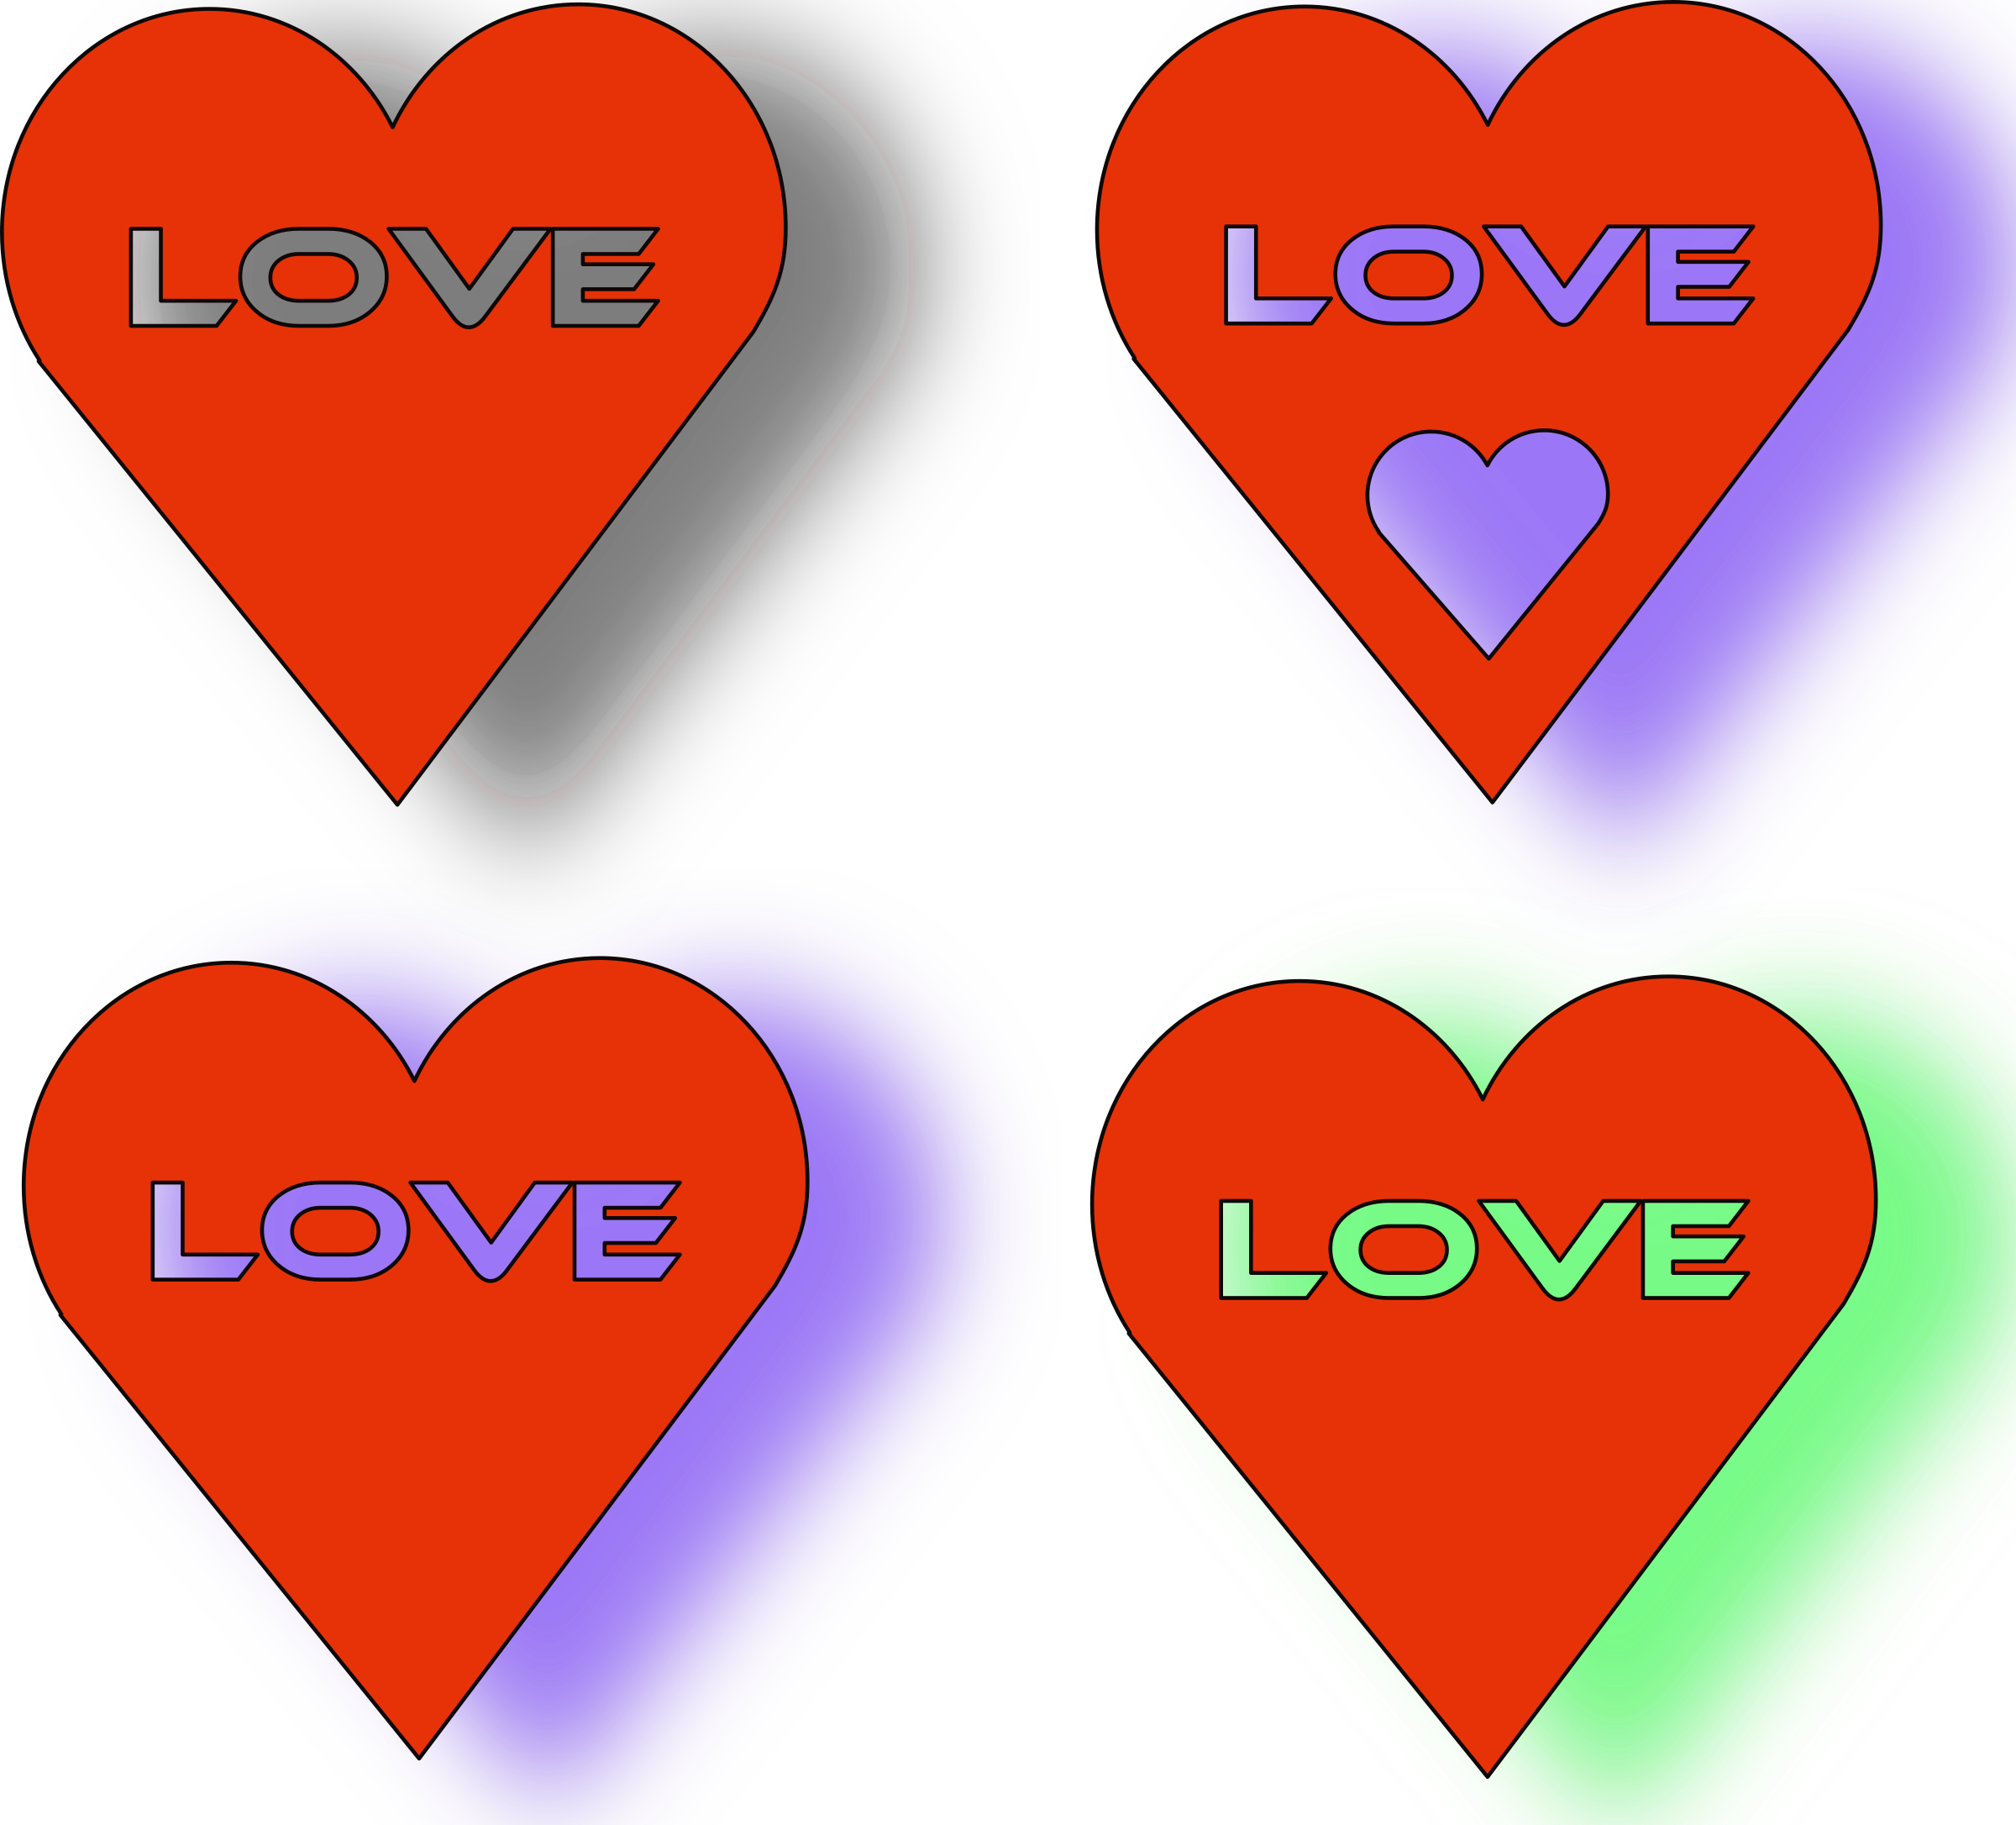 4 of hearts png. Clipart love heart s